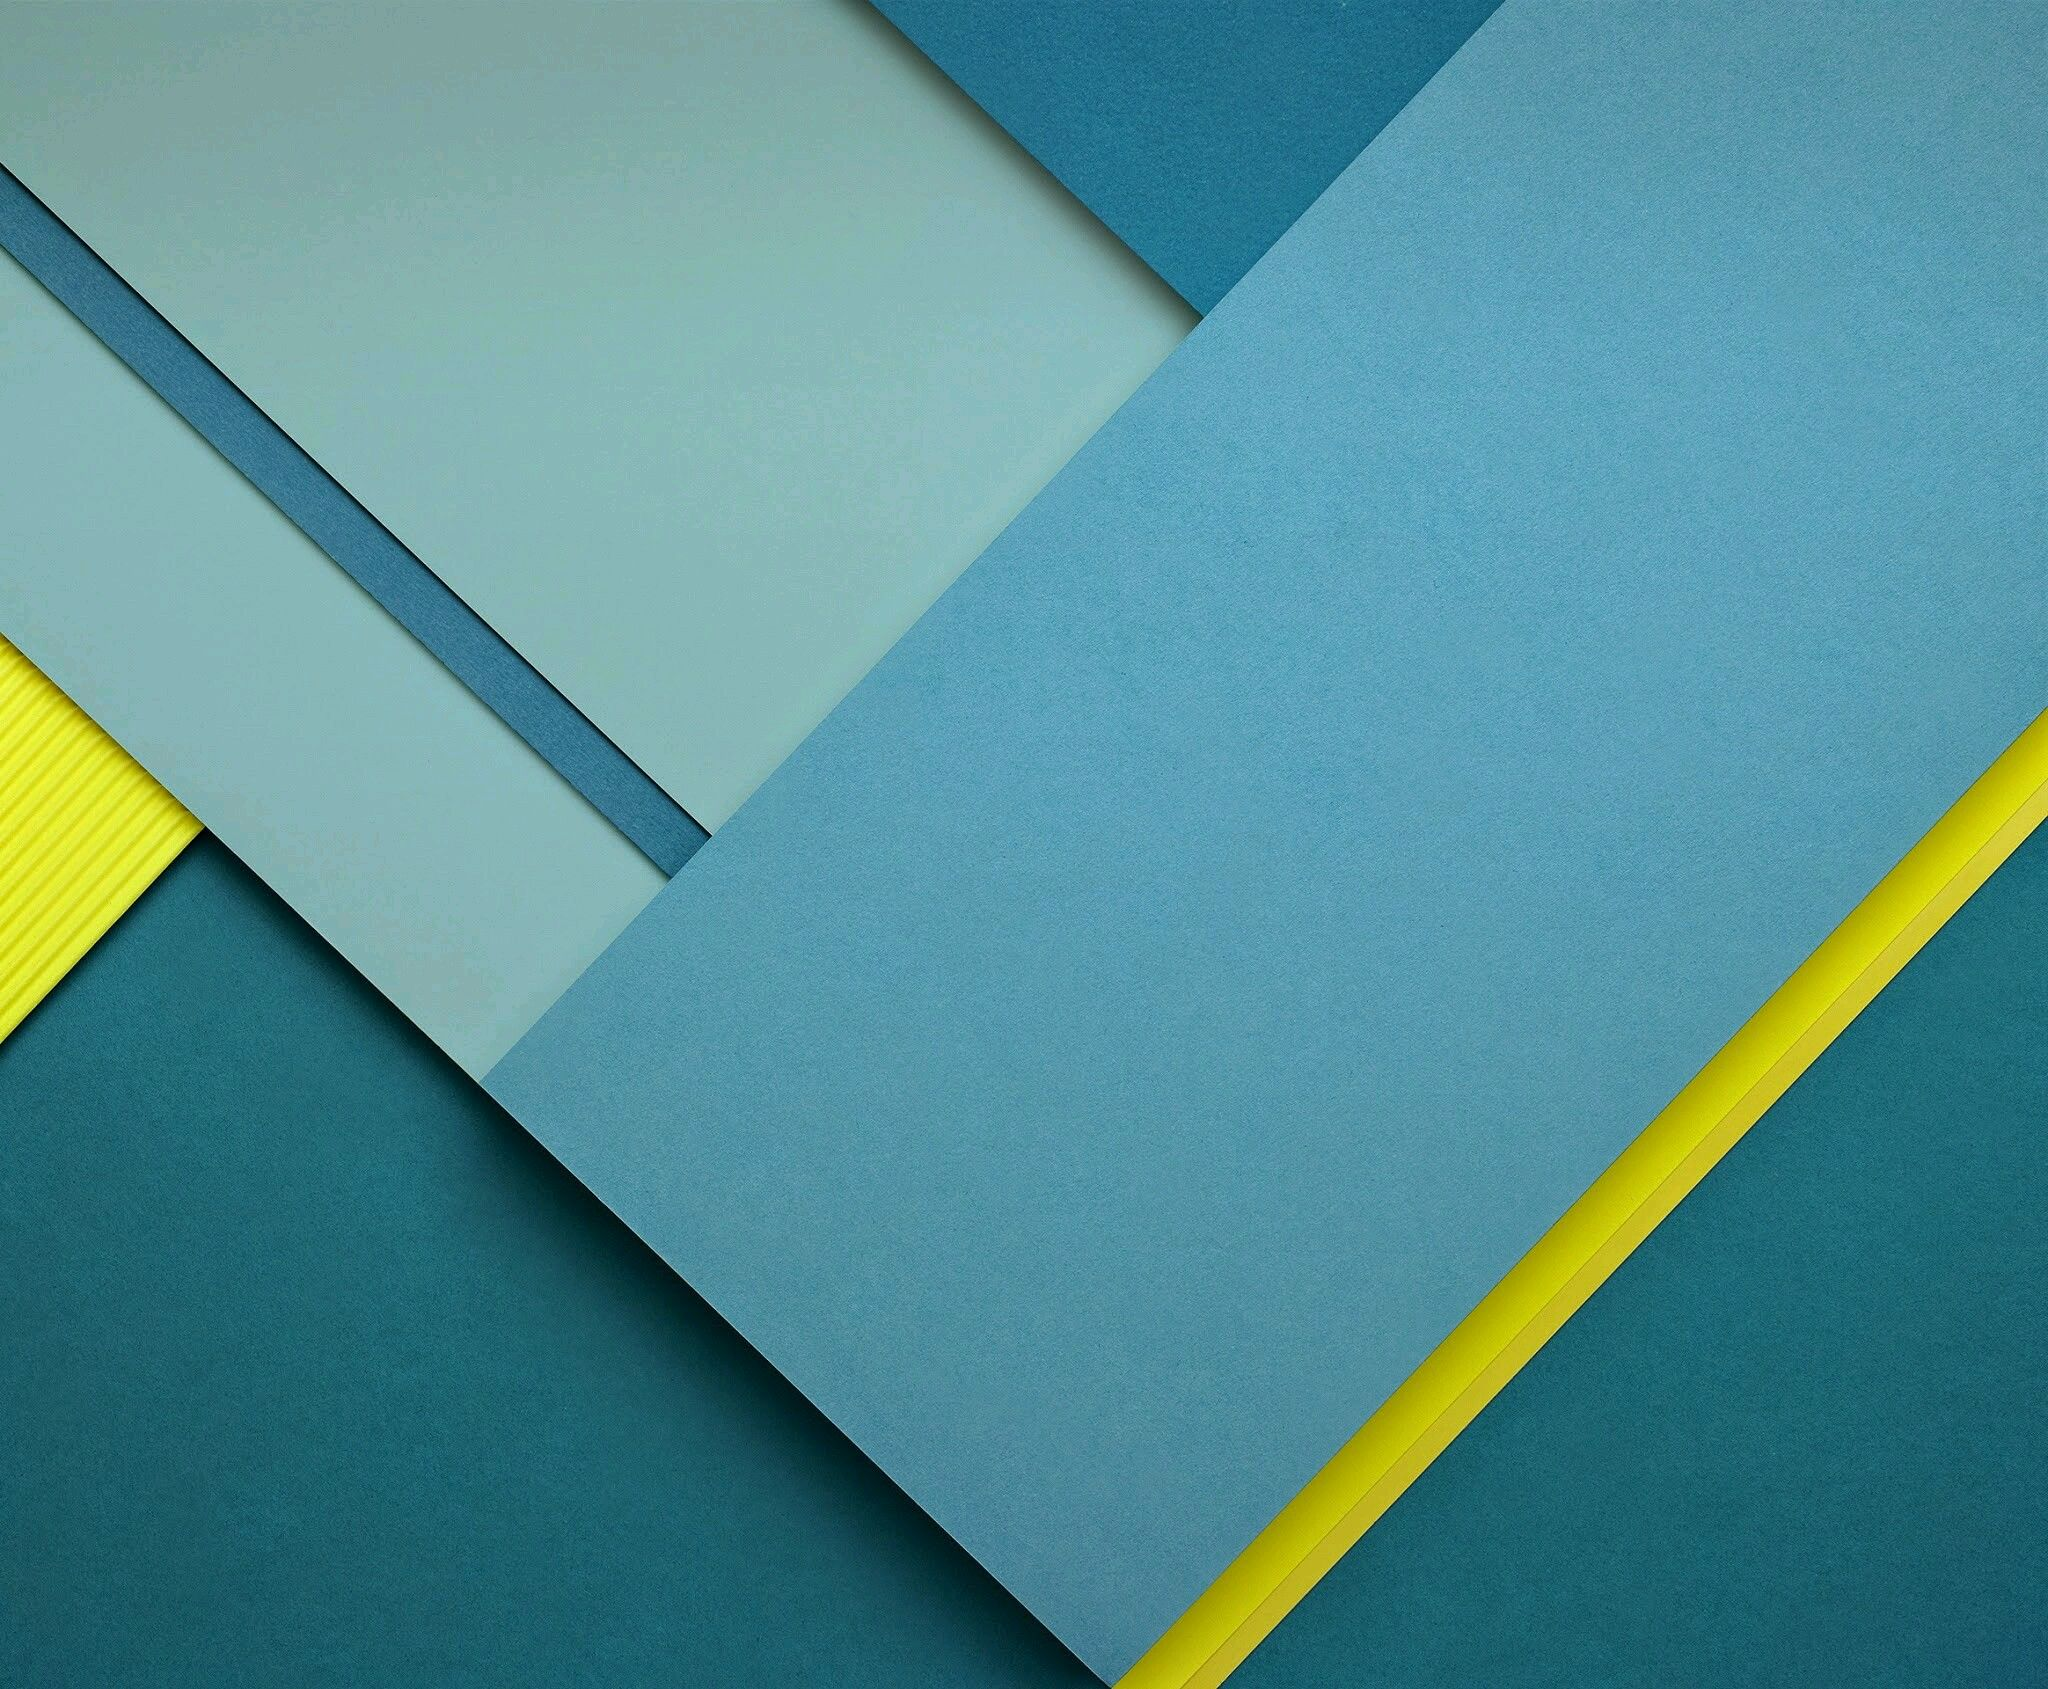 Nexus wallpaper Material design wallpaper iOS Android